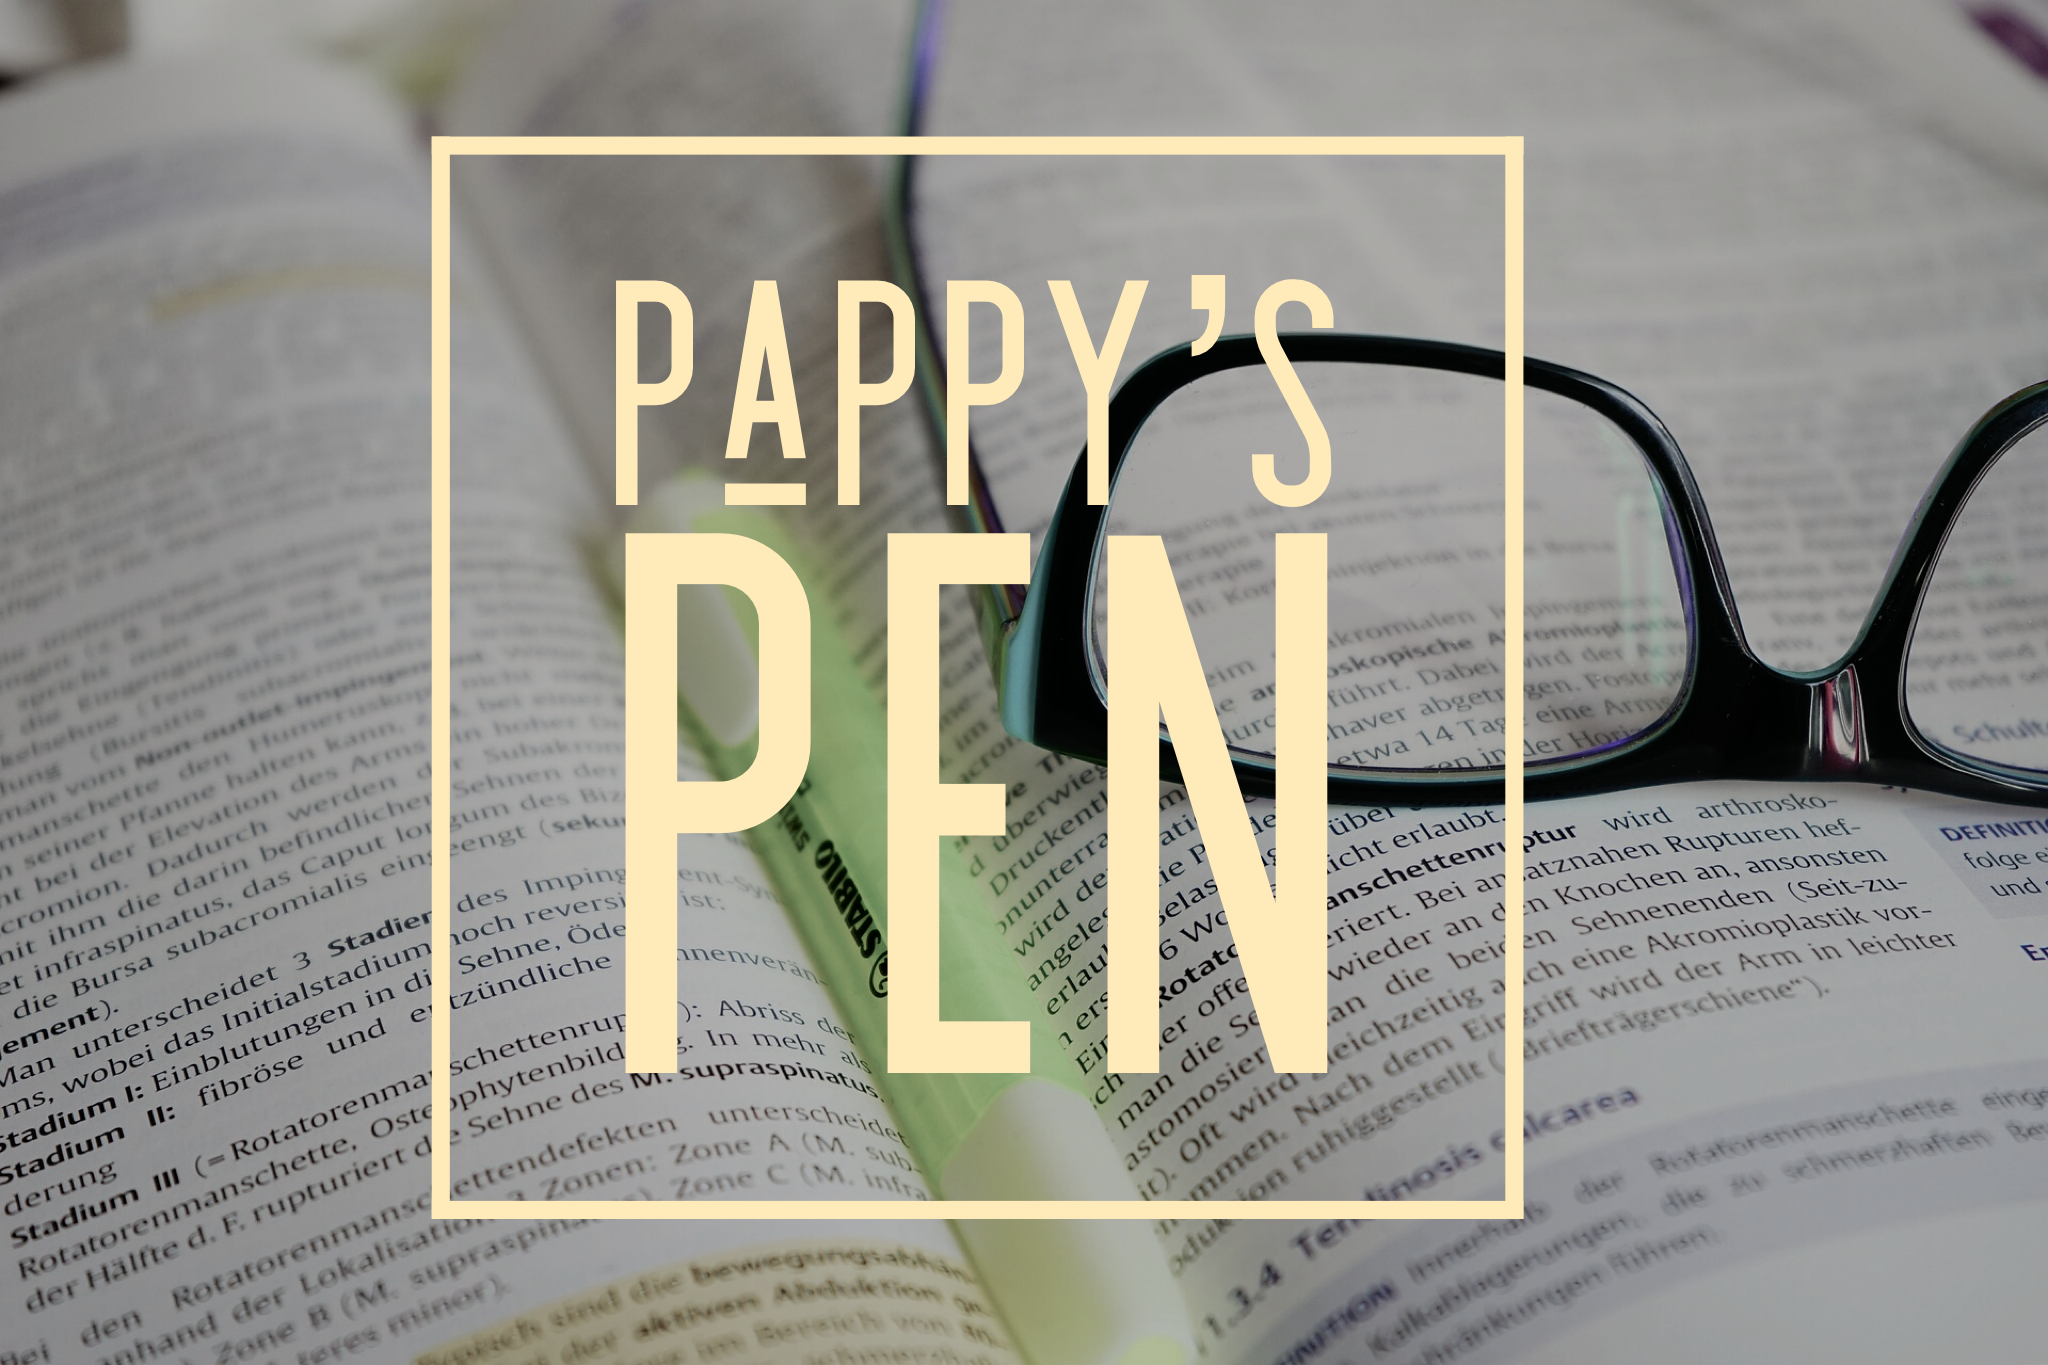 *Note - This article was written by Kevin Dougherty. This post is part of a continuing series called Pappy's Pen where he writes about his family, faith and recent cancer diagnosis. *